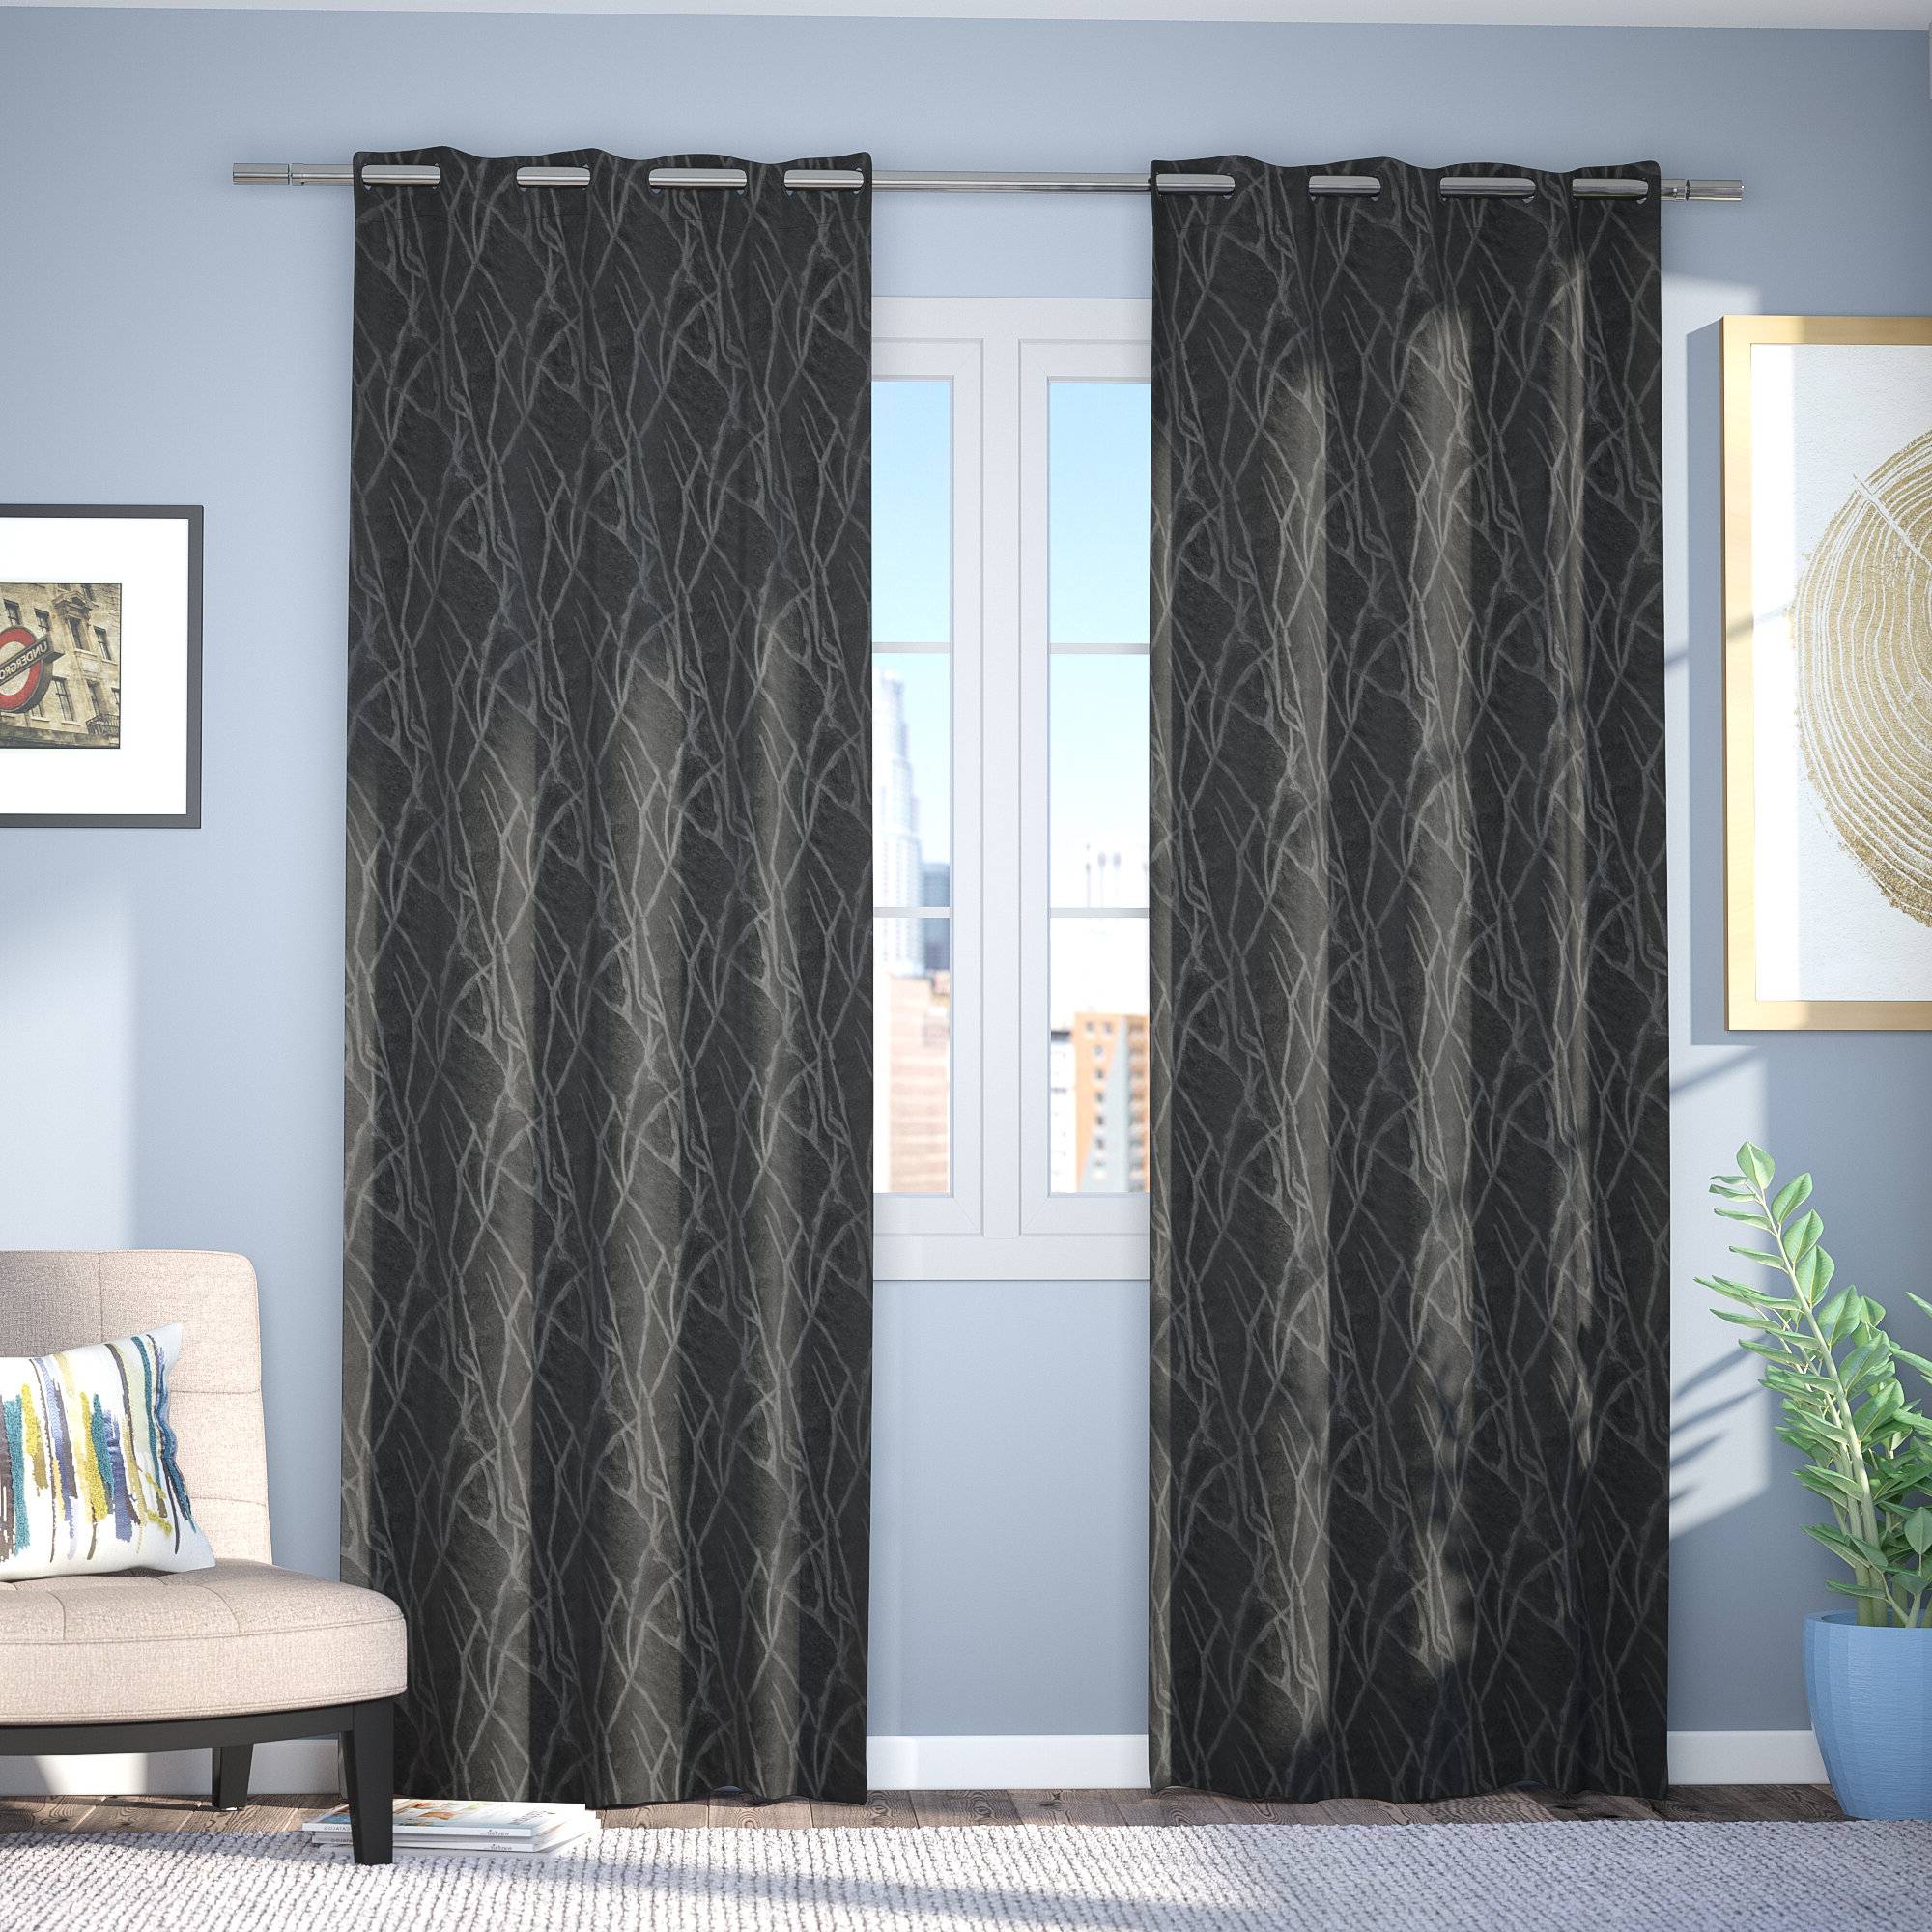 Twig Insulated Blackout Curtain Panel Pairs With Grommet Top For Newest Waut Floral Room Darkening Thermal Grommet Curtain Panels (View 20 of 20)